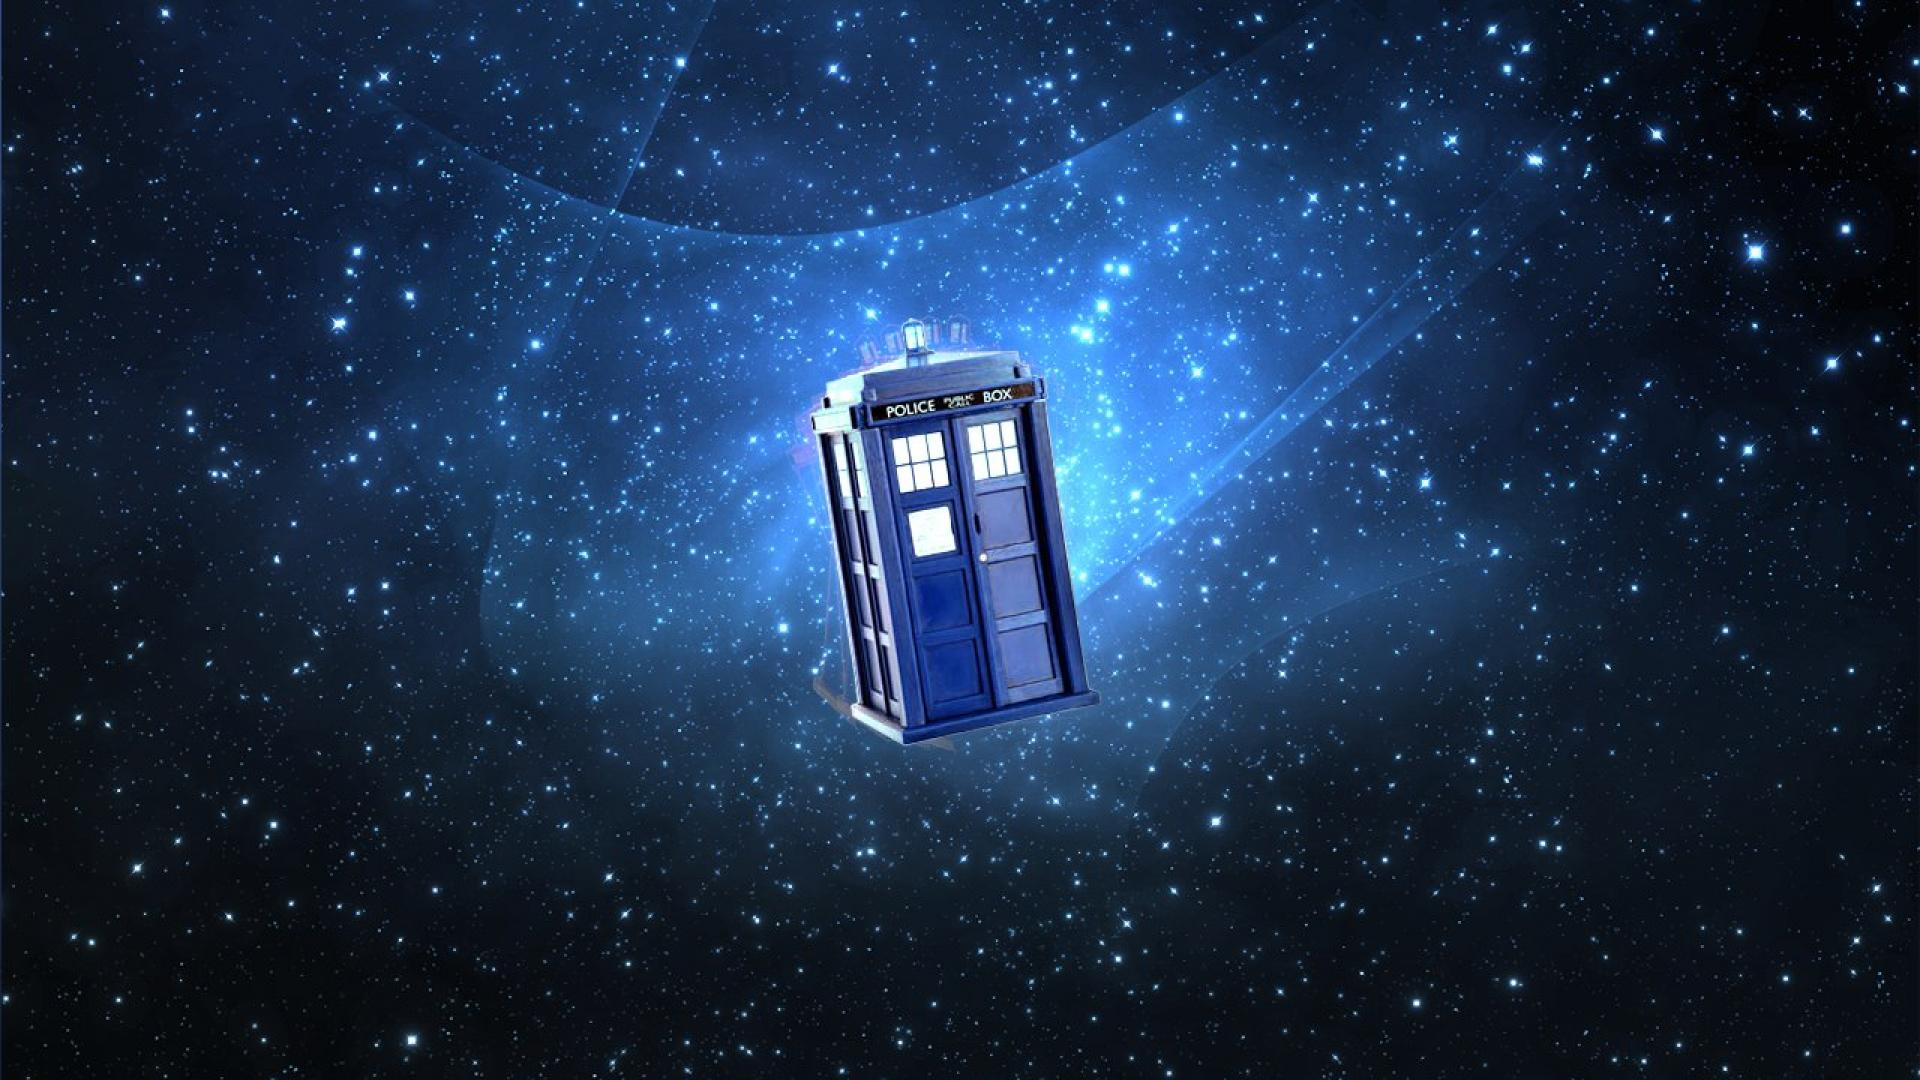 Doctor Who Wallpapers ID: QTN2323